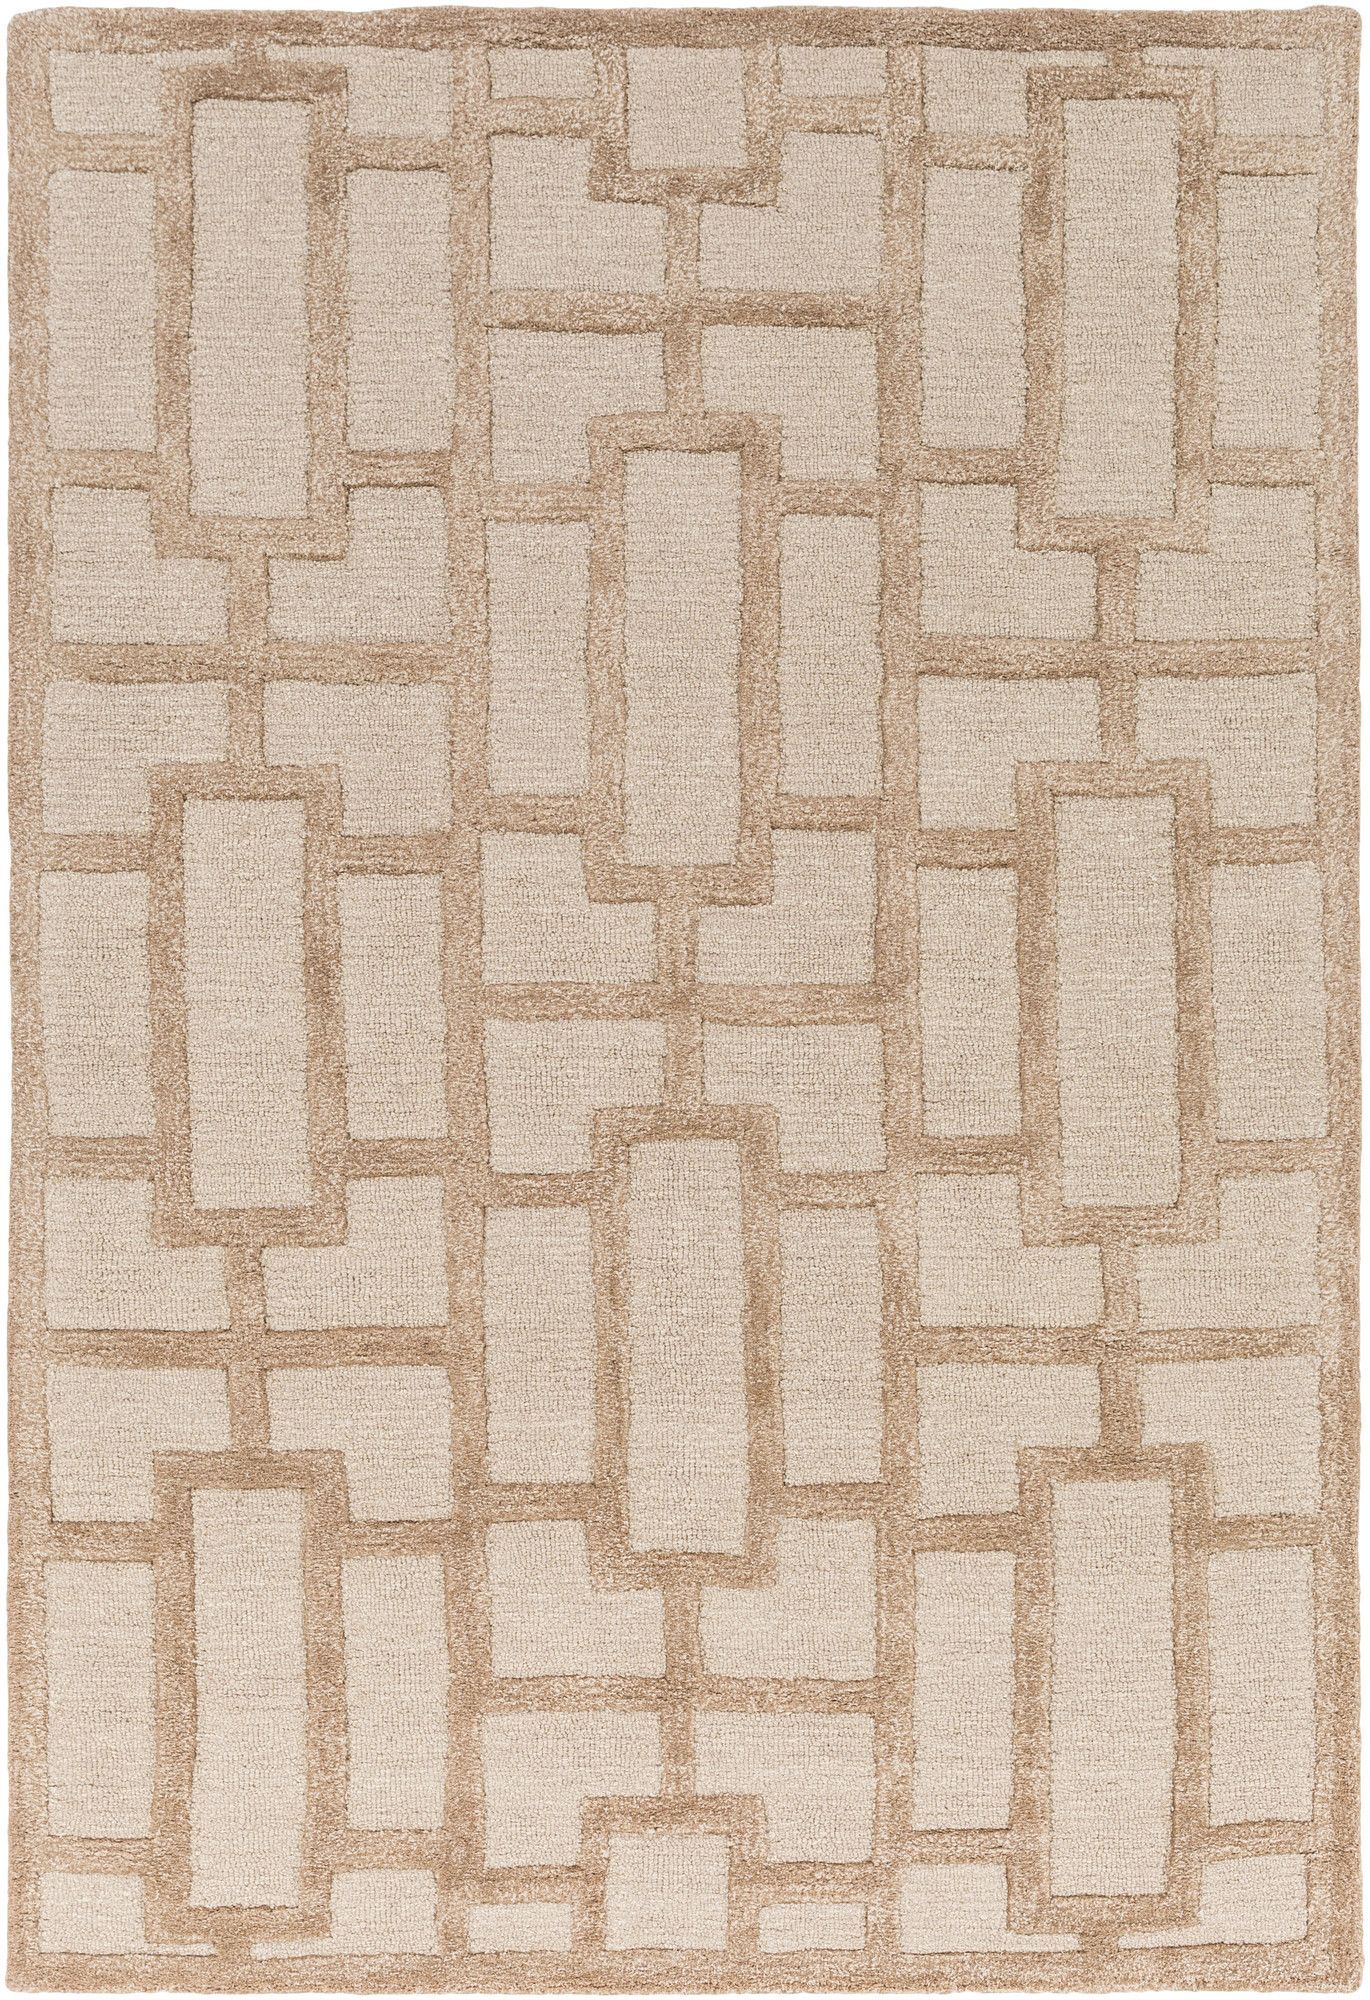 Arise Addison Hand Tufted Tan Area Rug